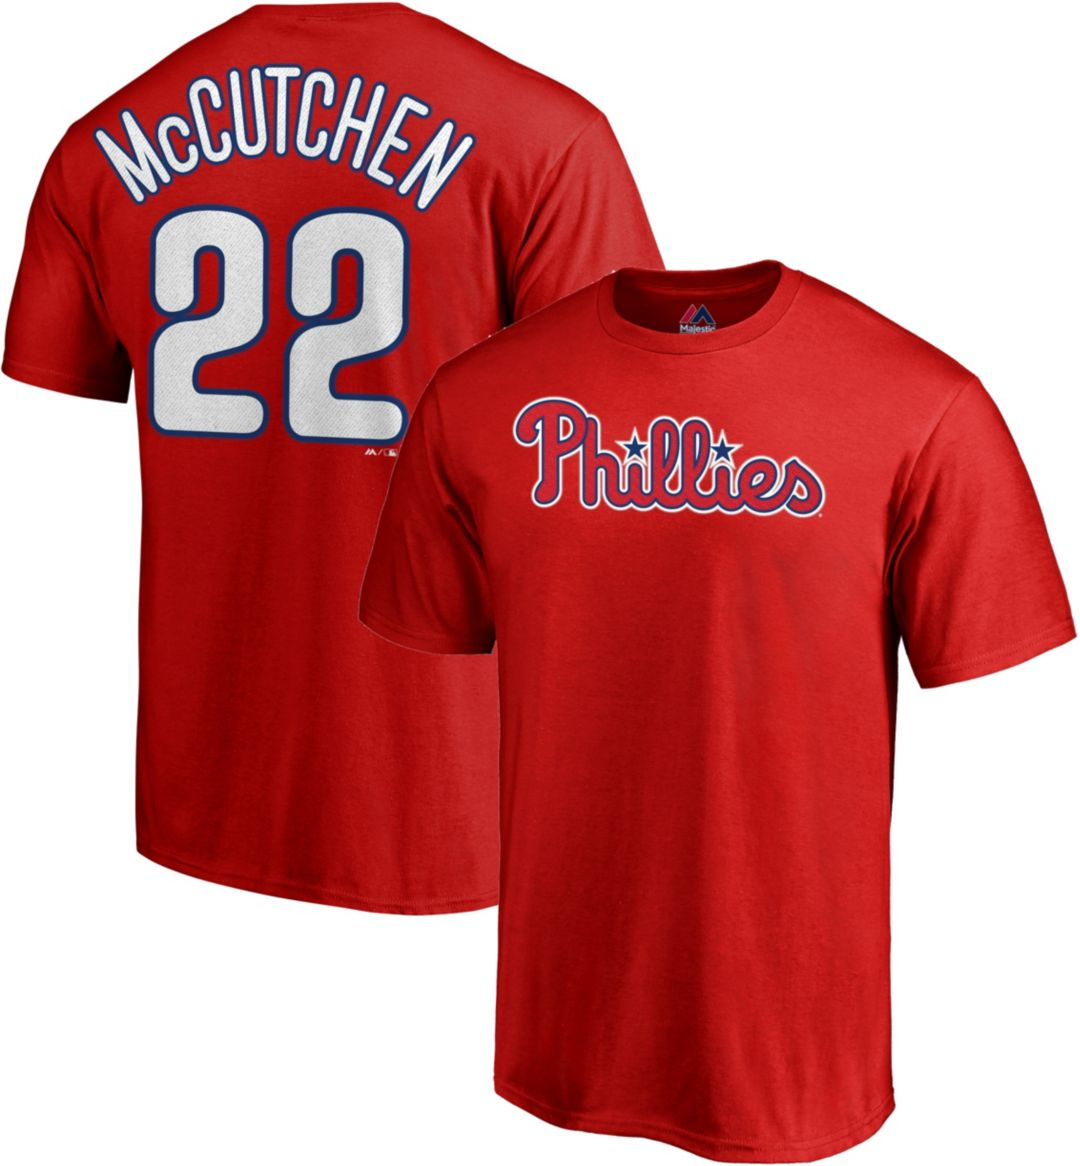 best service 62a43 2e866 Majestic Men's Philadelphia Phillies Andrew McCutchen #22 Red T-Shirt